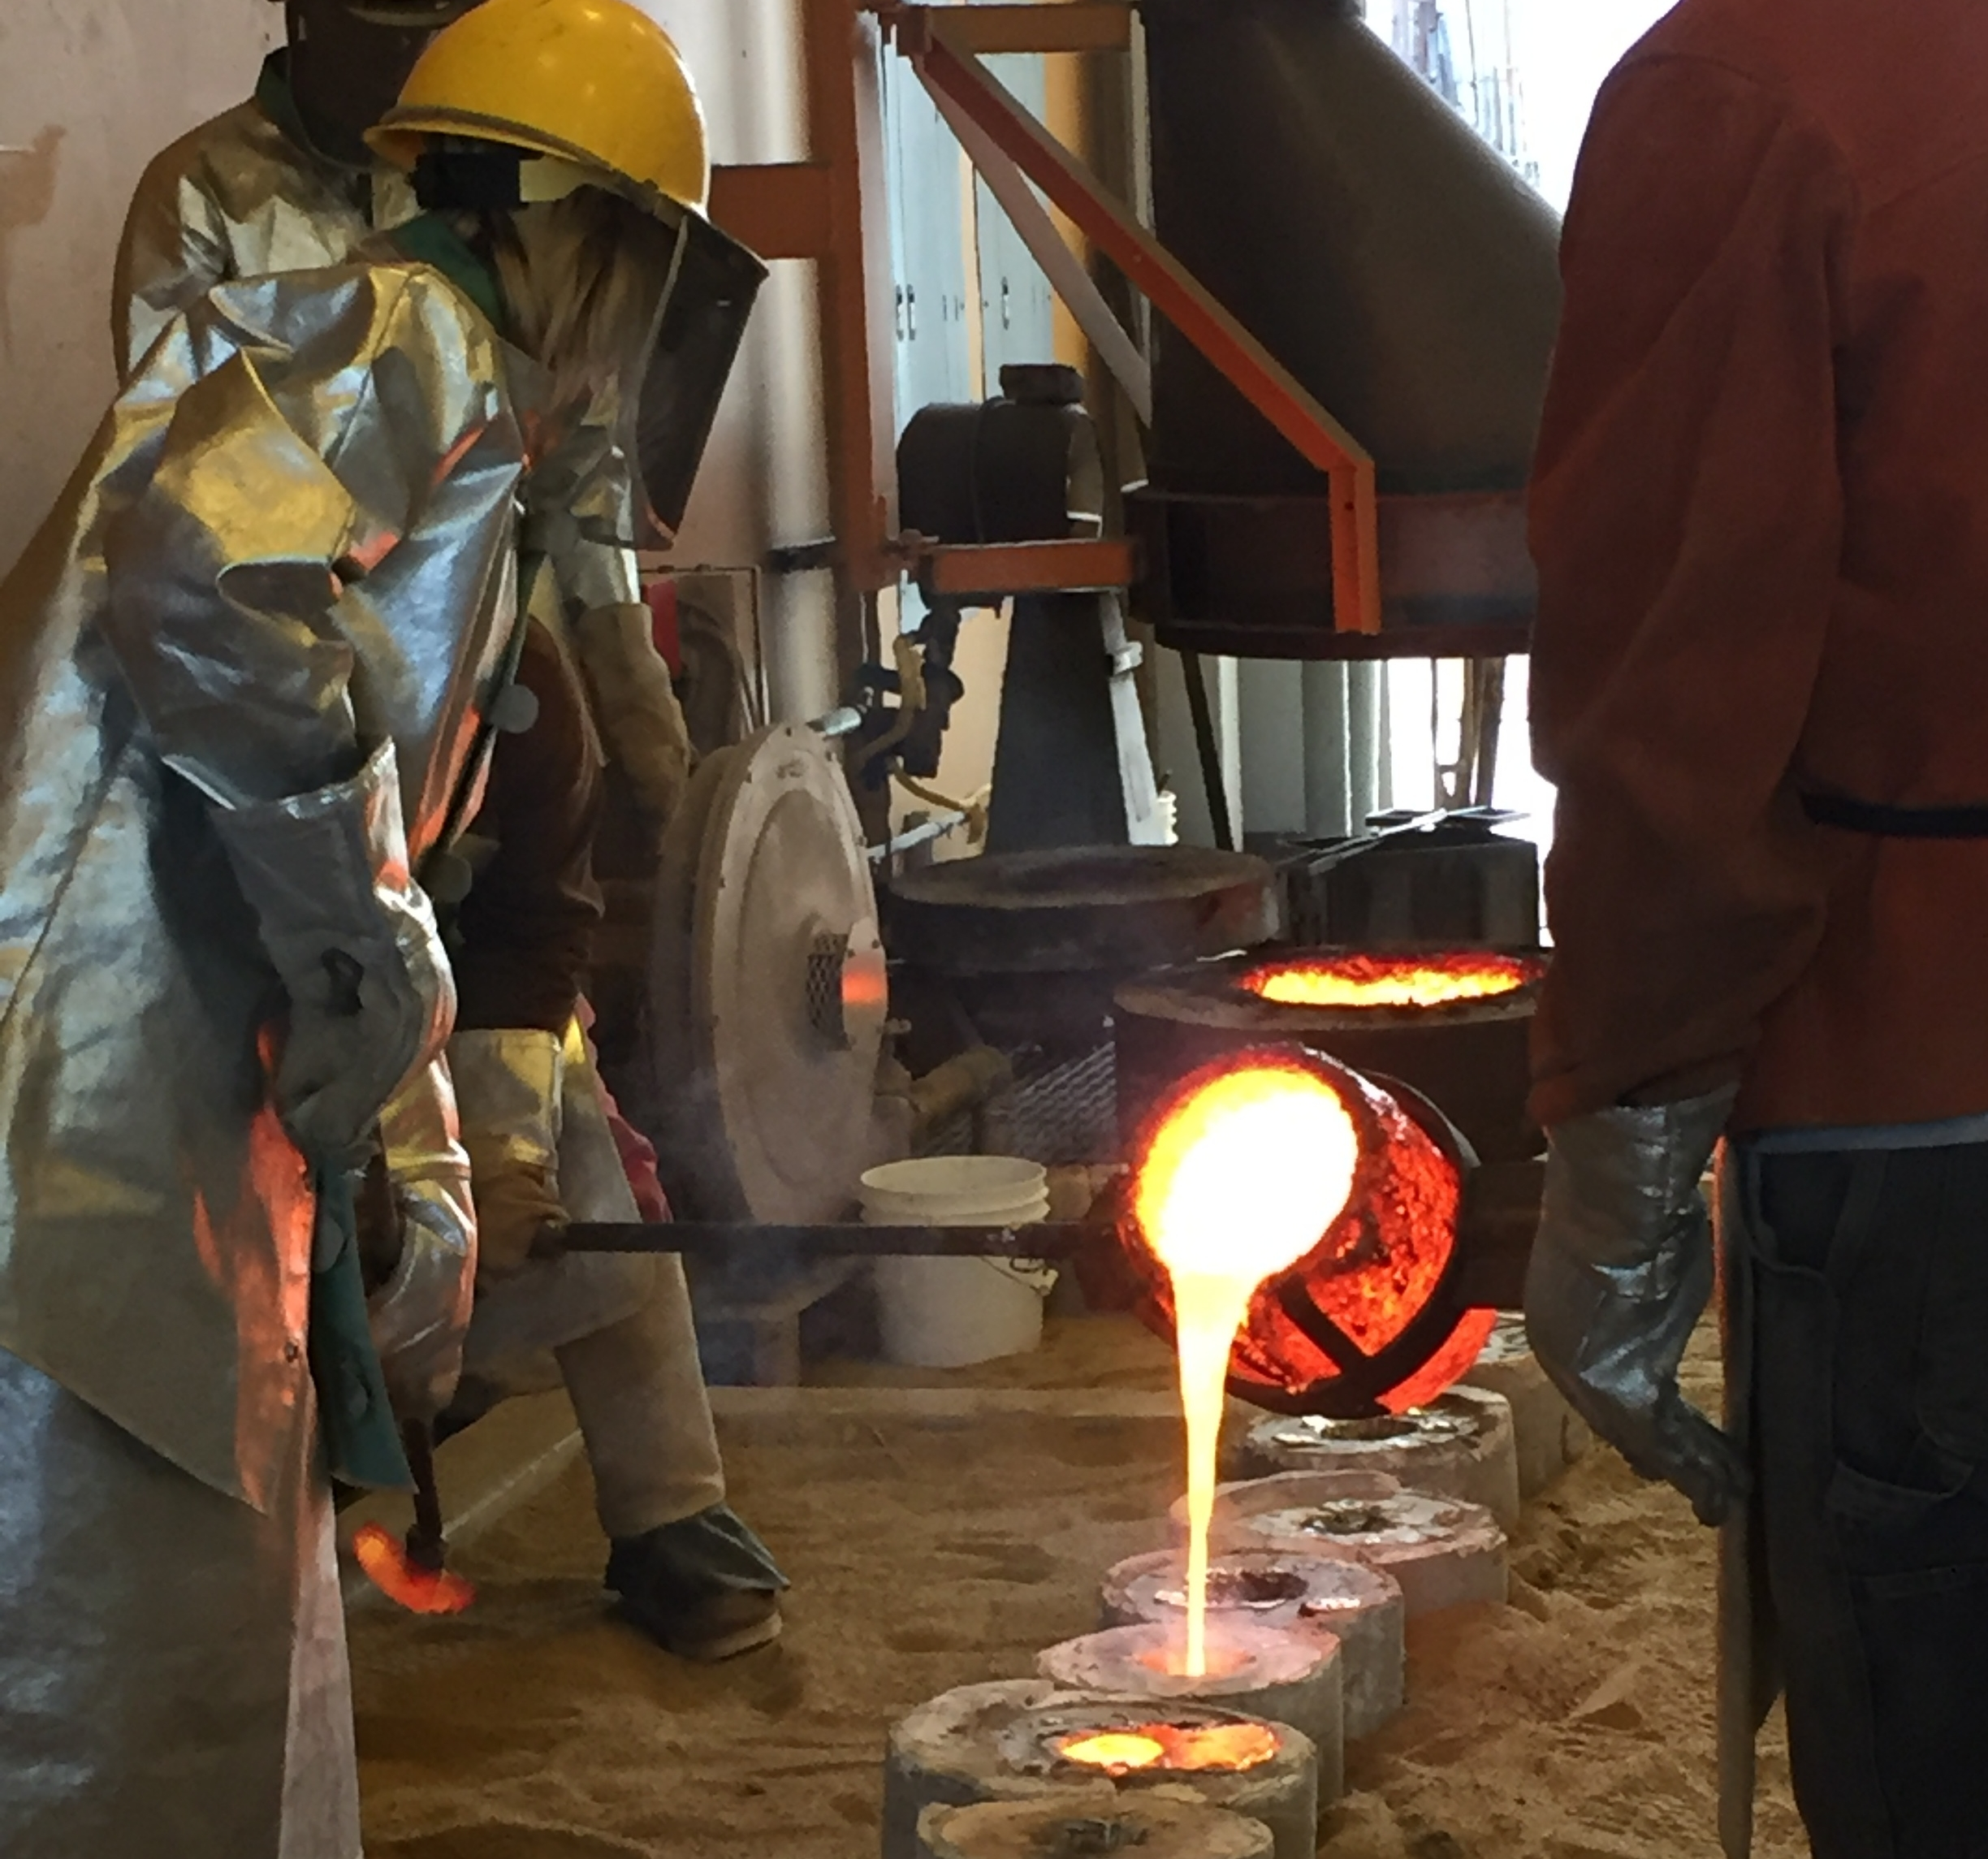 The pouring of molten bronze in hot flasks.